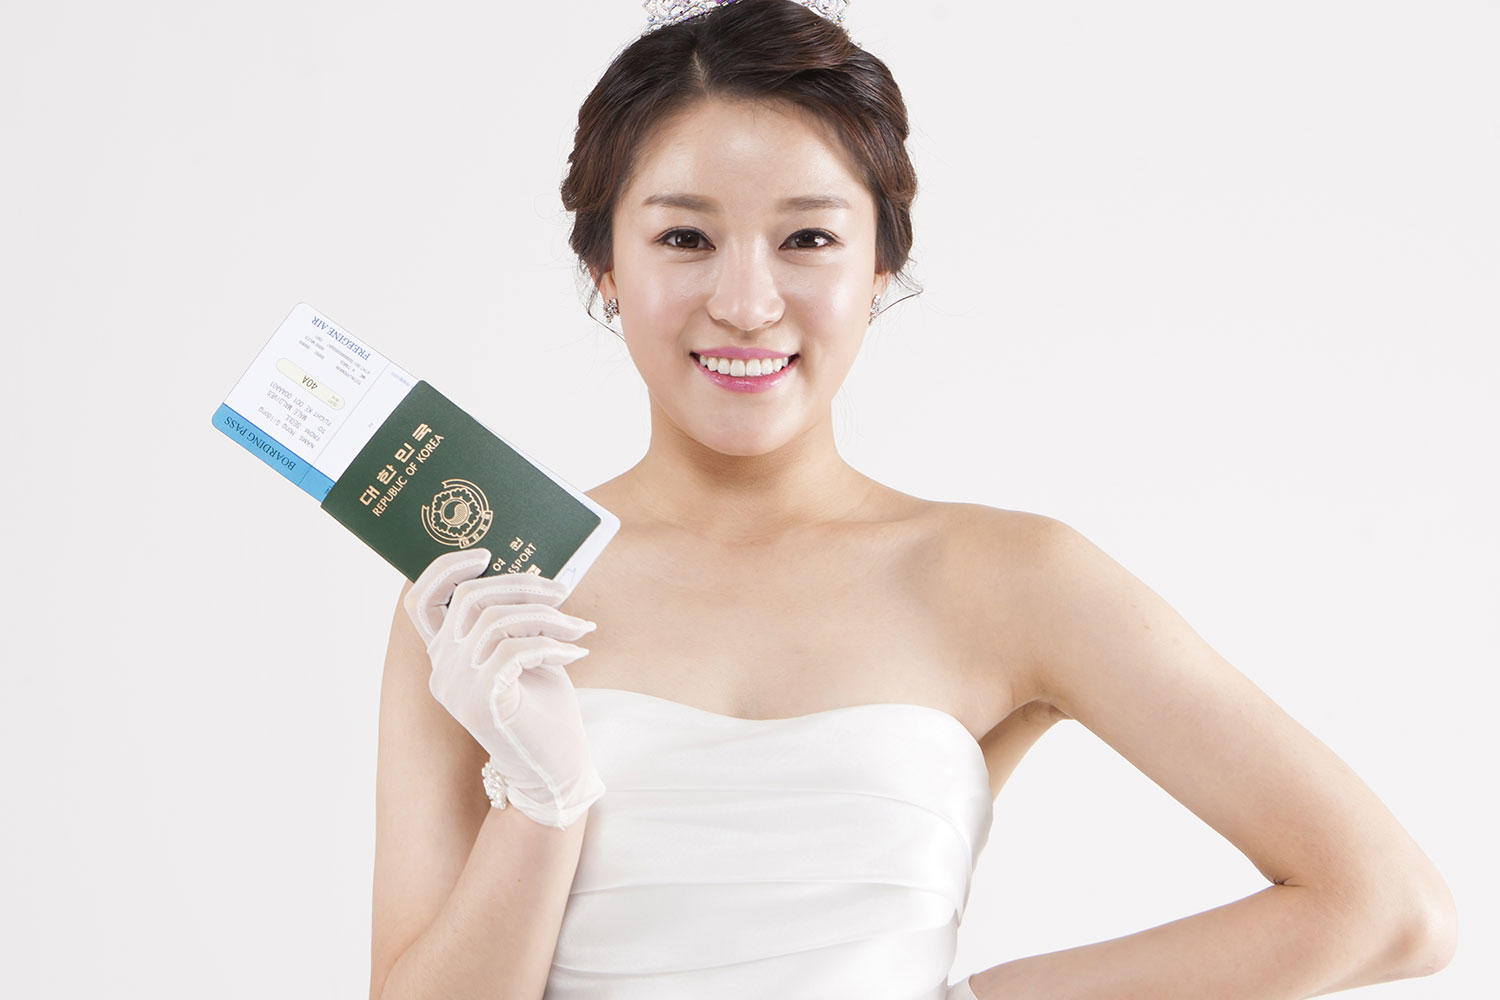 Tightening The K-1 Fiancé Visa Program